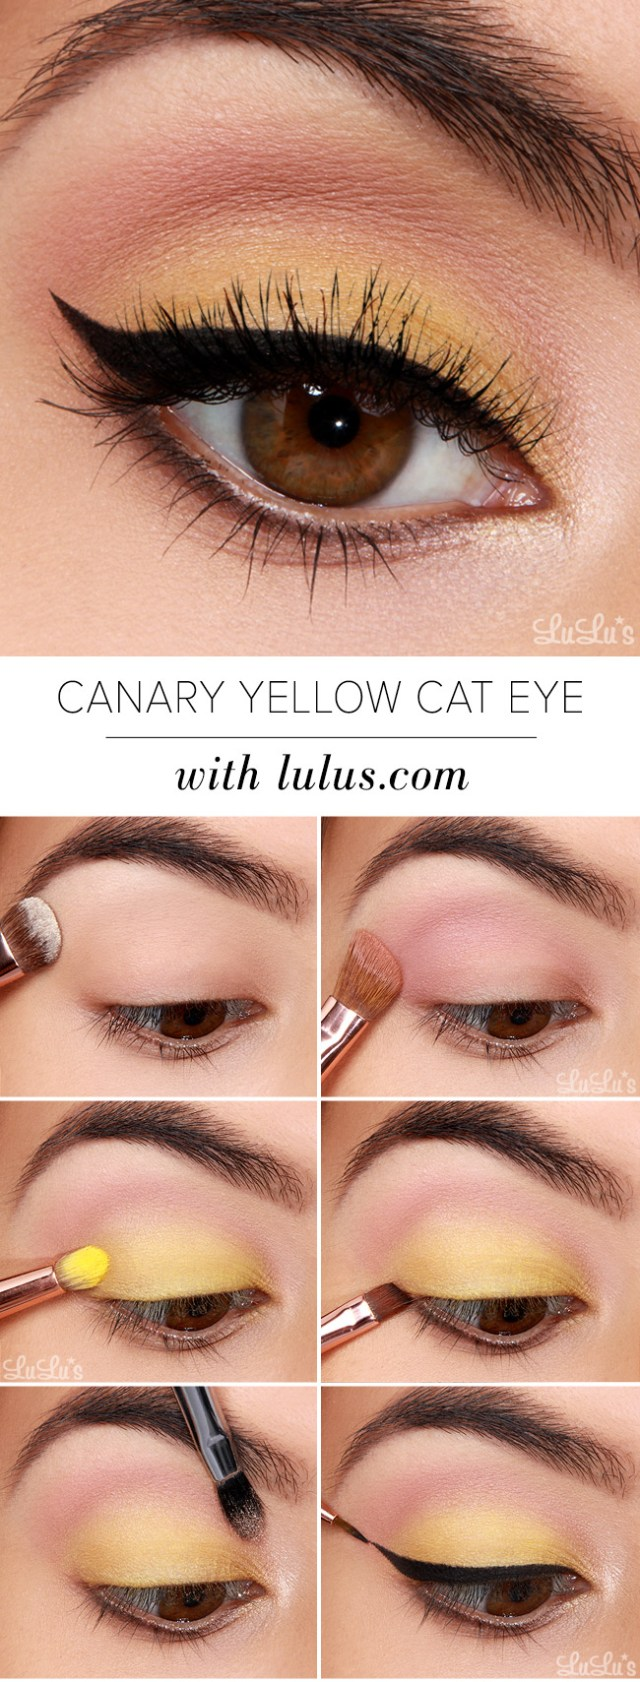 Summer Eye Makeup Lulus How To Canary Yellow Eye Makeup Tutorial Lulus Fashion Blog